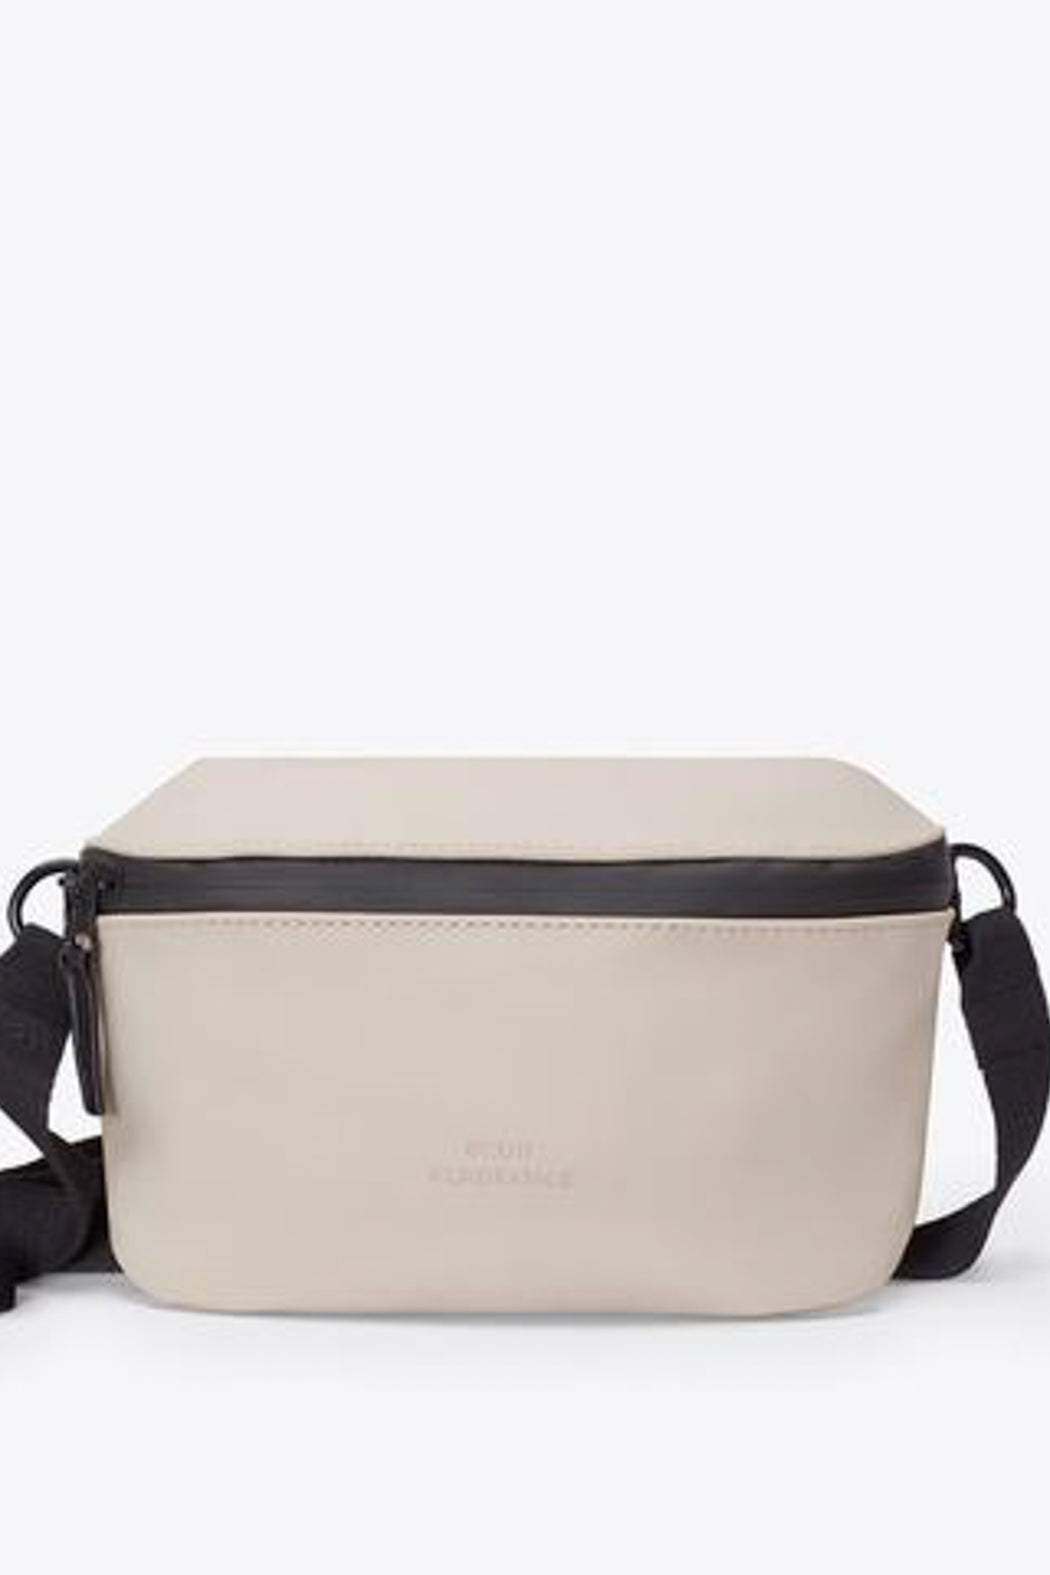 JONA Bag lotus nude